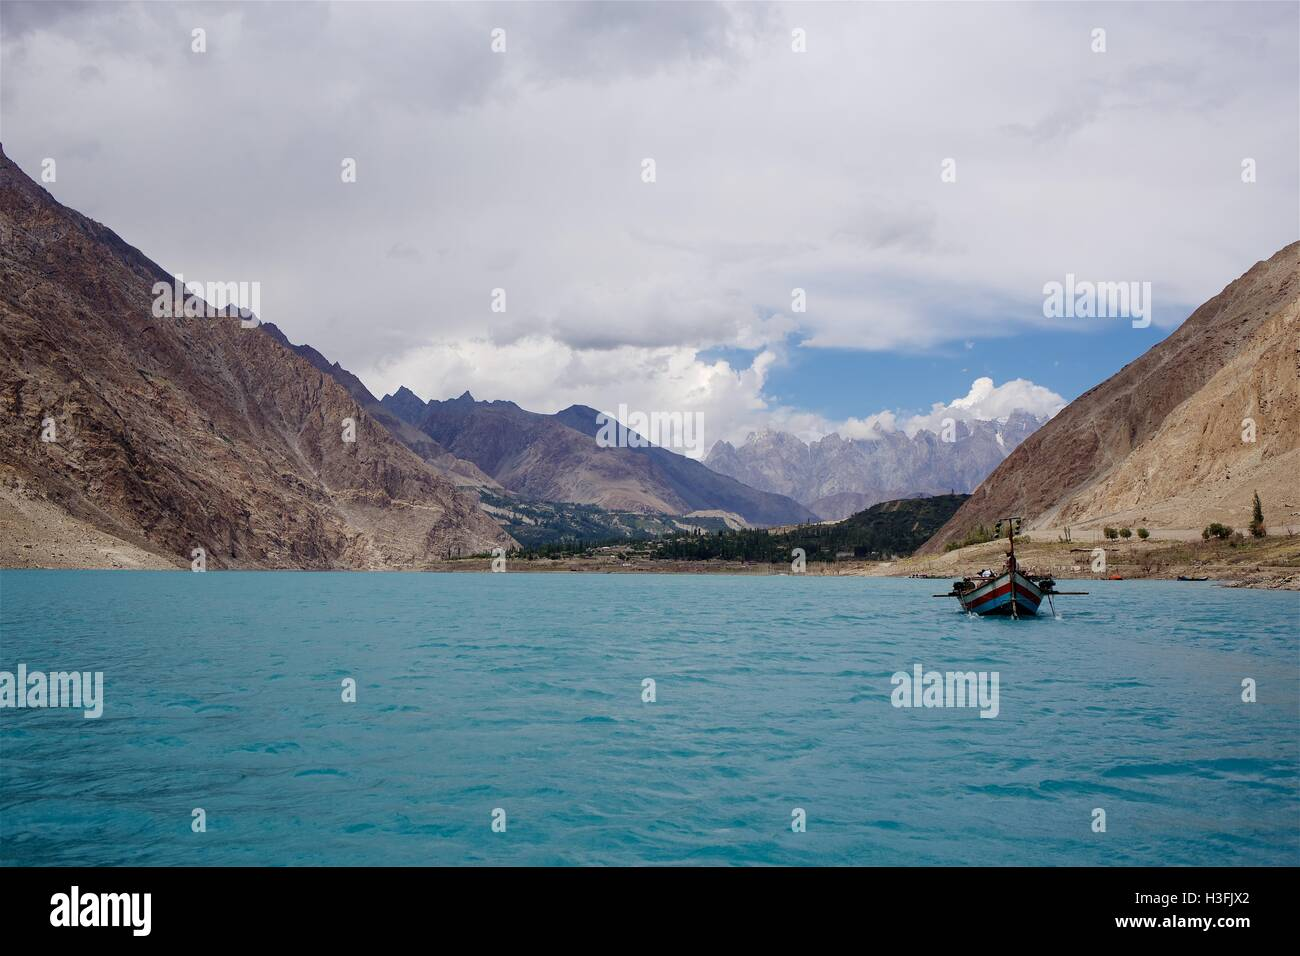 Attabad Lake Pakitan - Stock Image